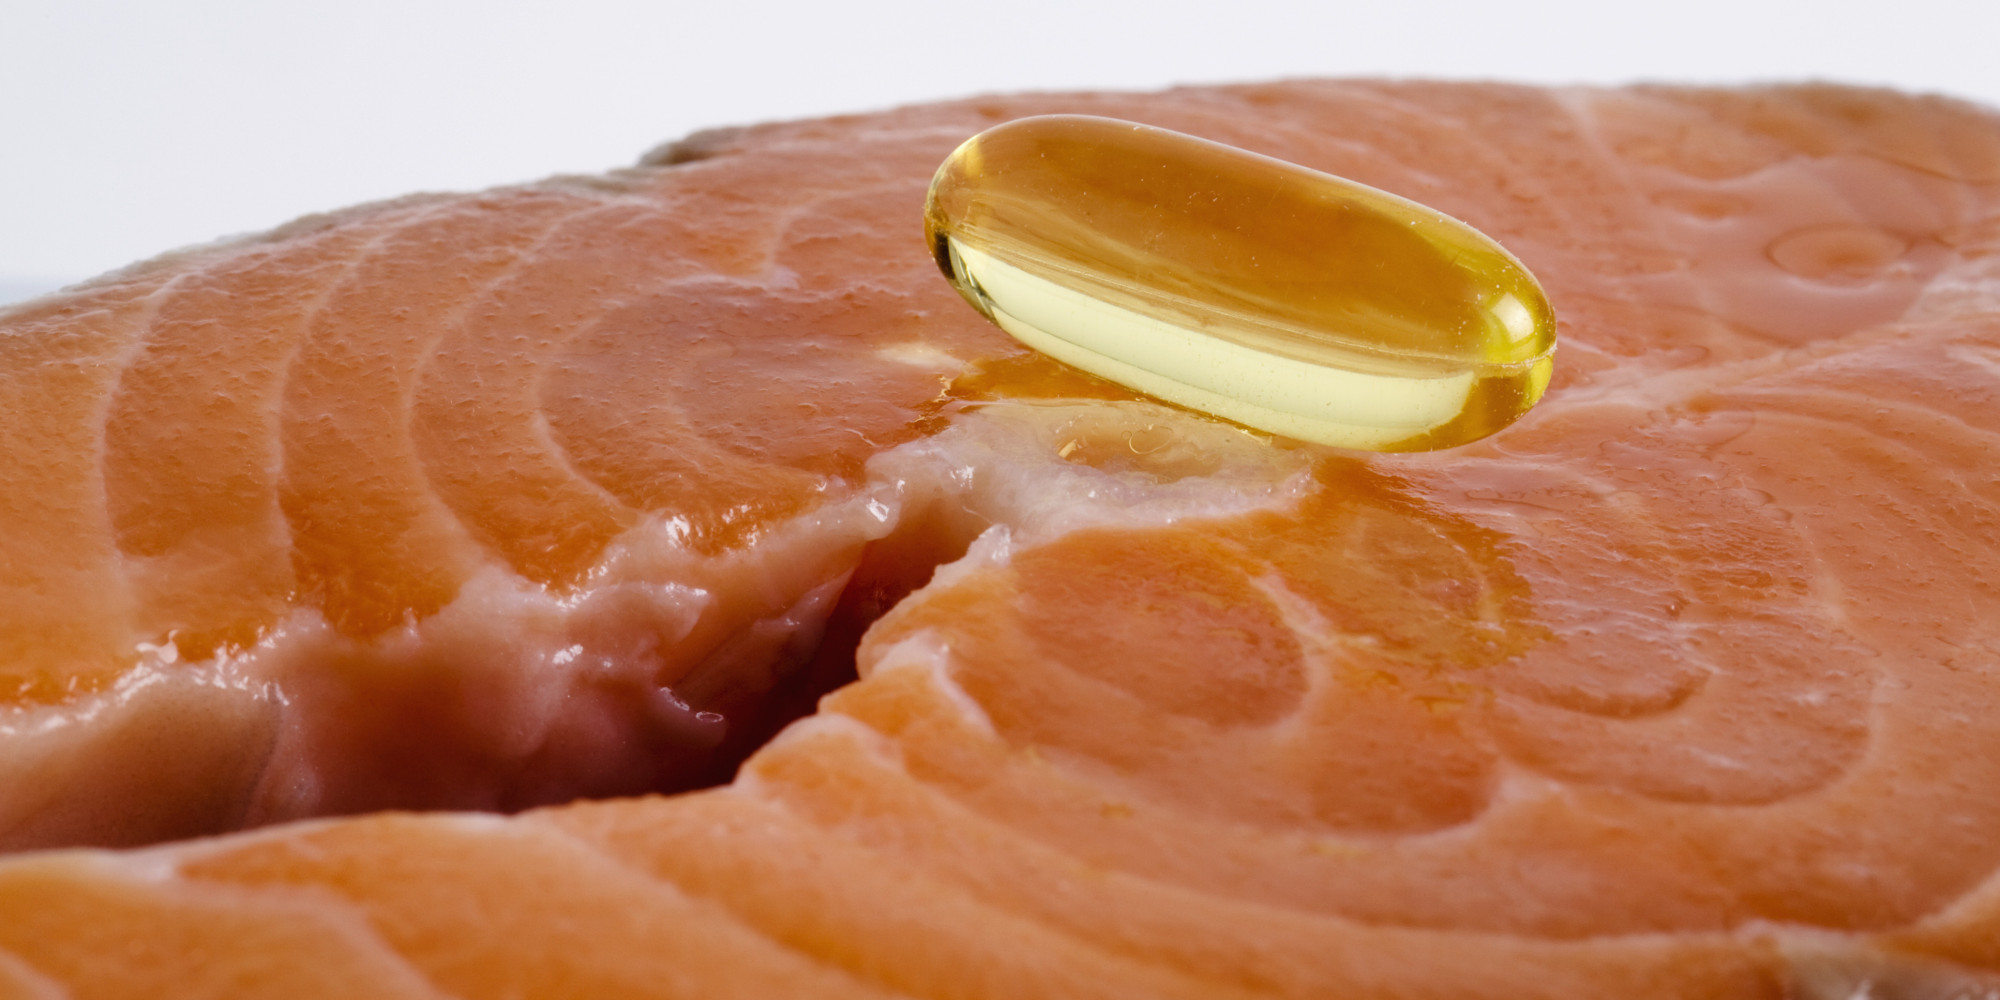 Fish oil benefits could extend to helping prevent dementia for Fish oil on face